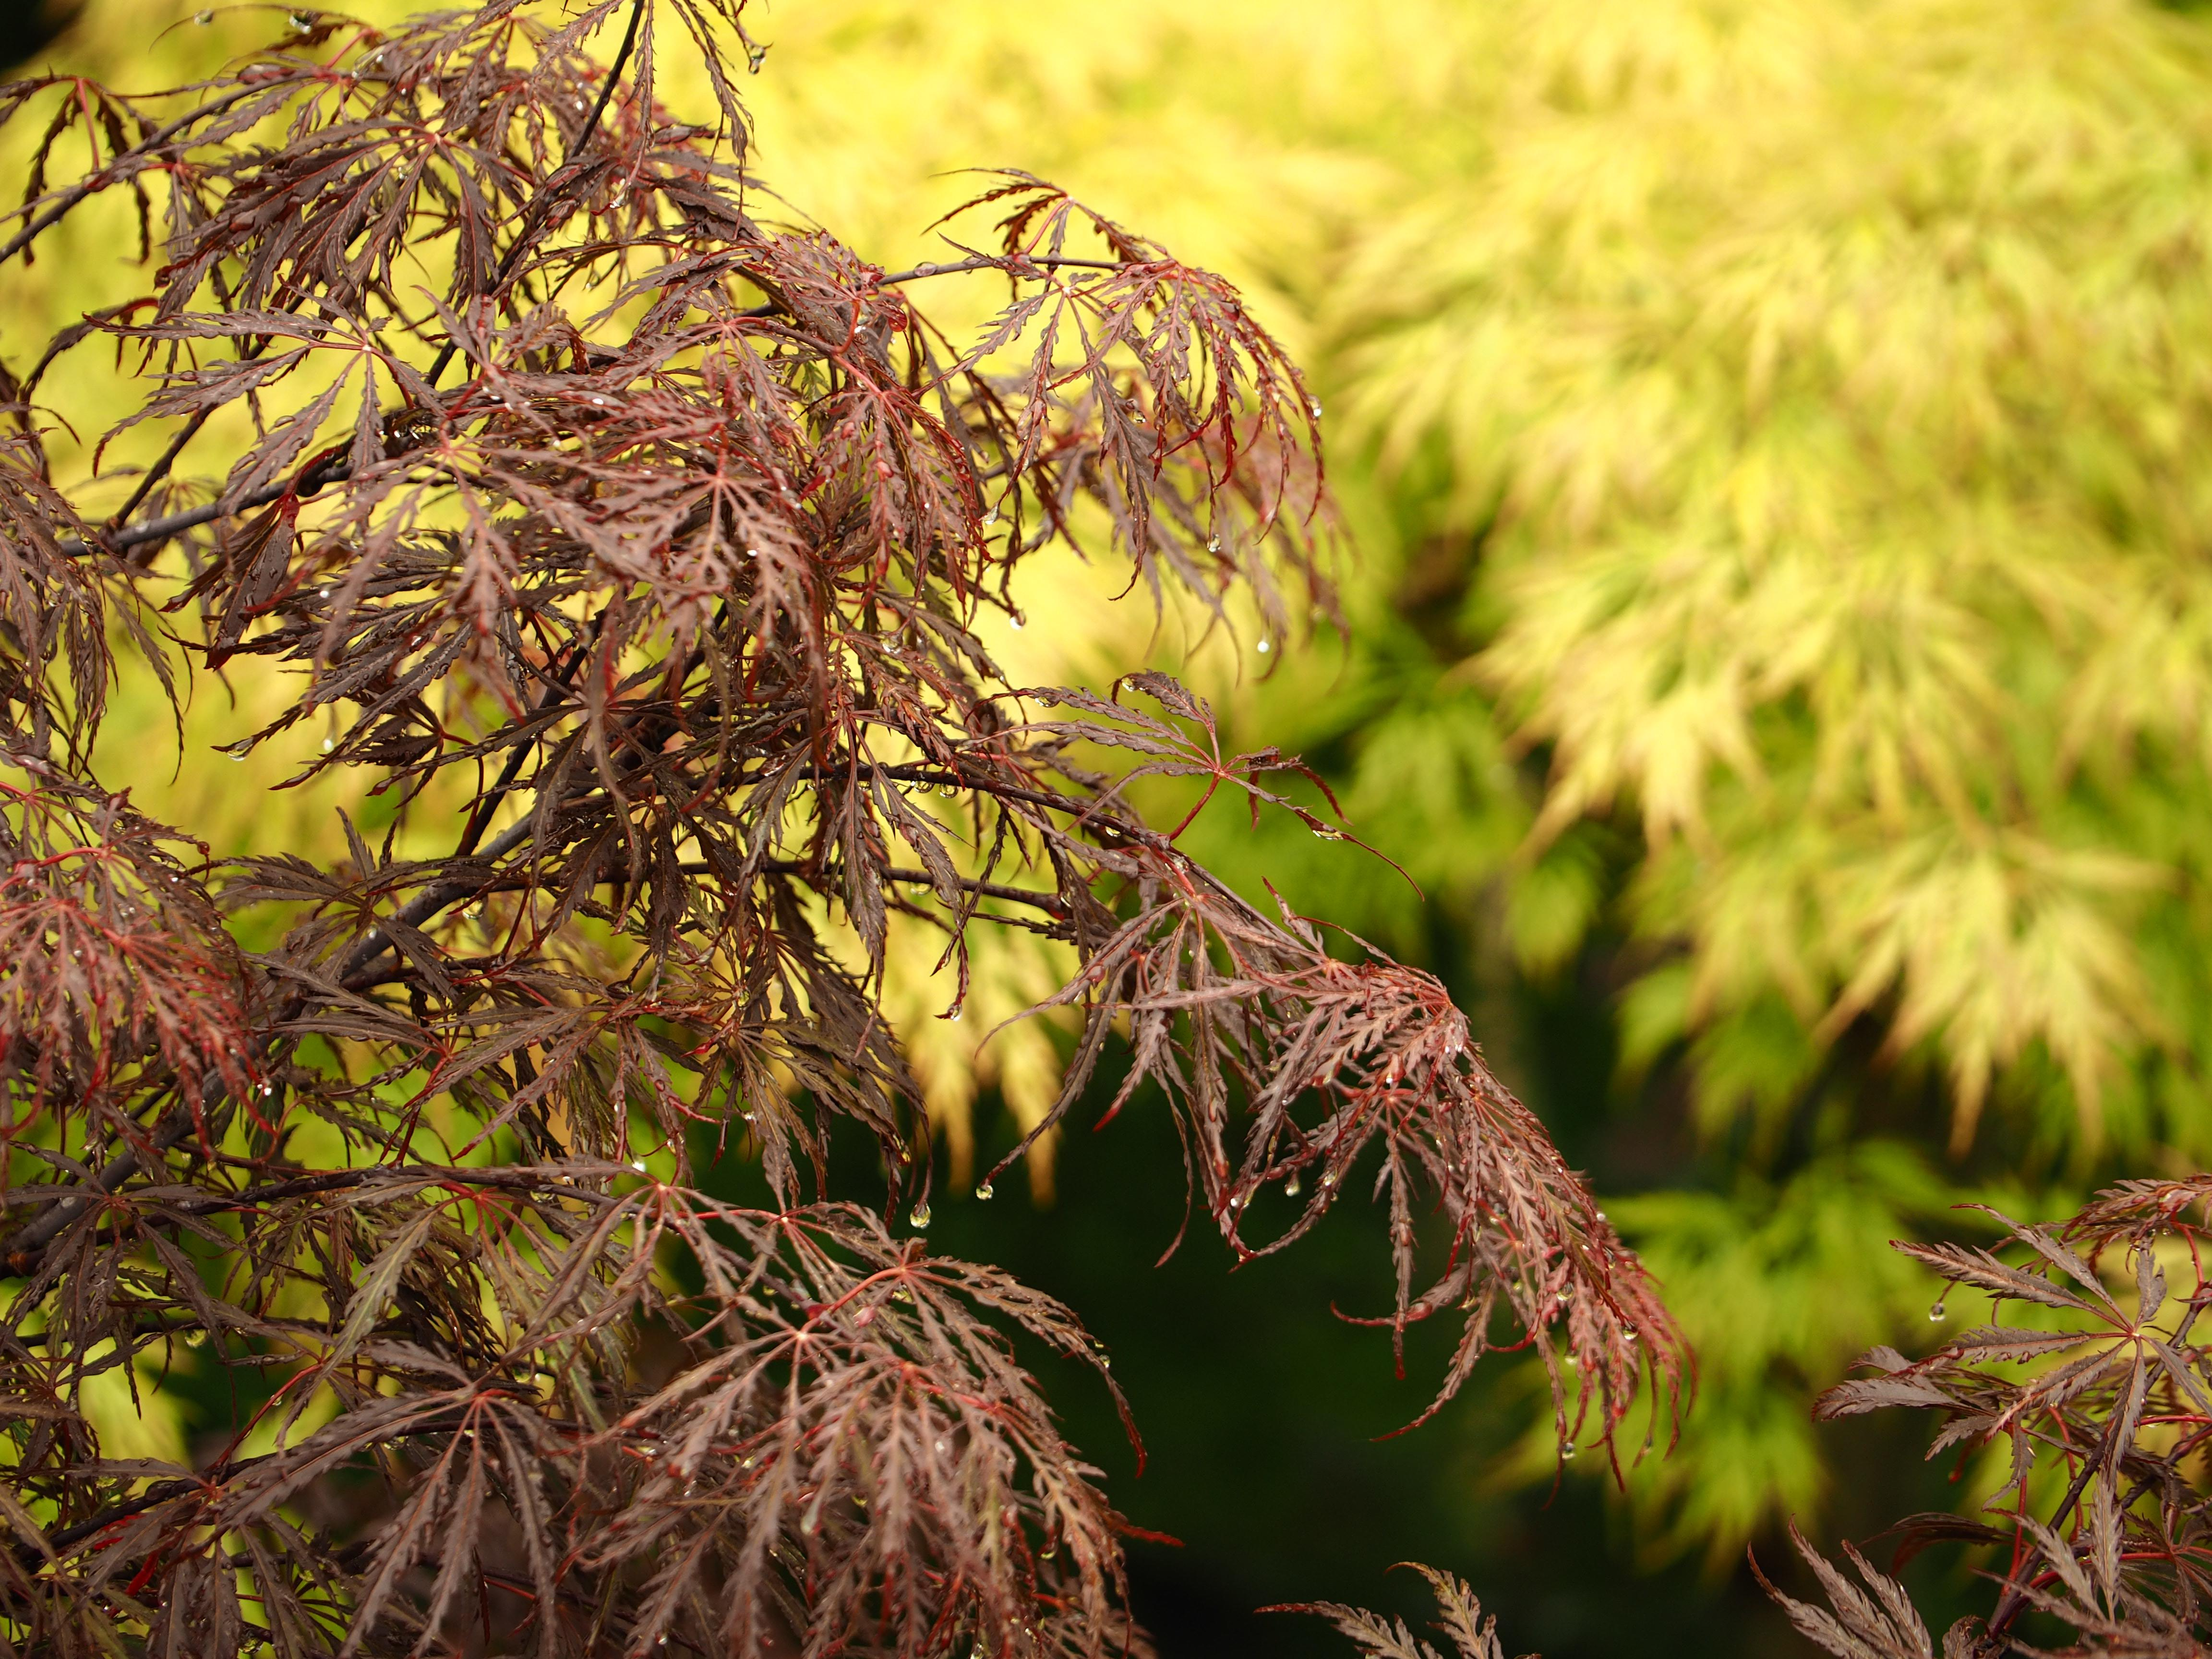 Acer palmatum Diss.'Inaba shidare' in May